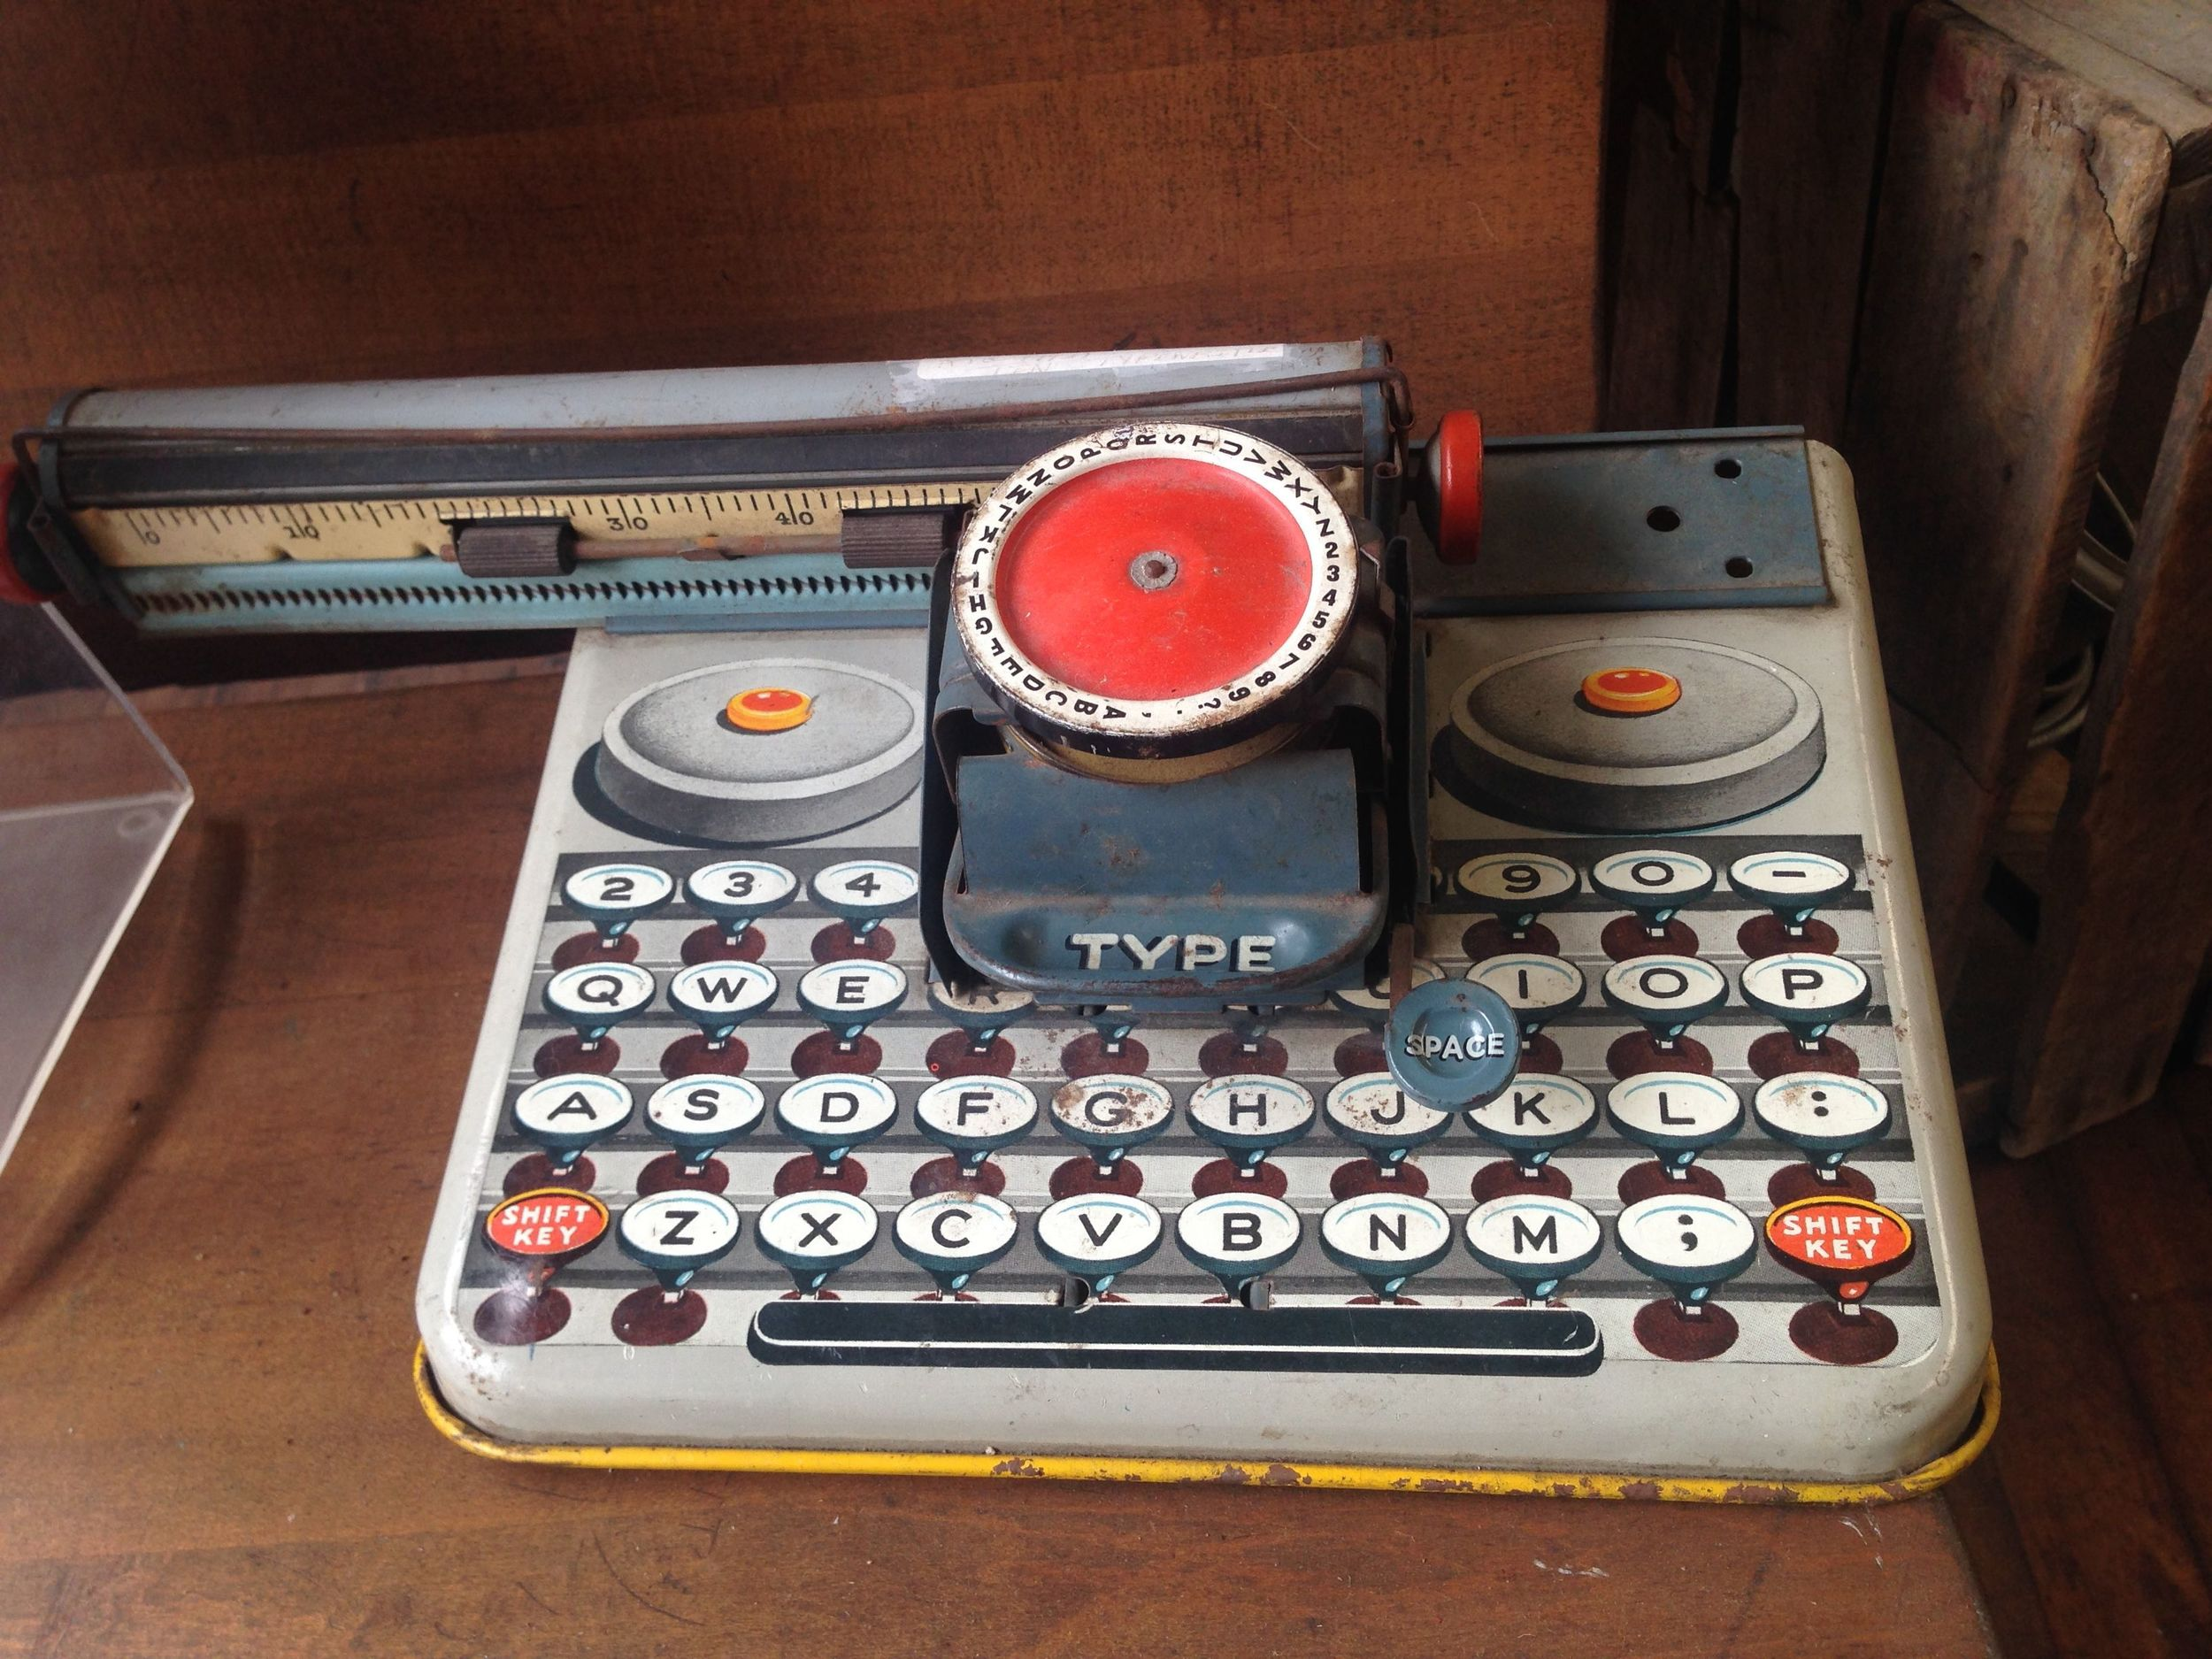 Spotted at an antique store: a strange old toy typewriter